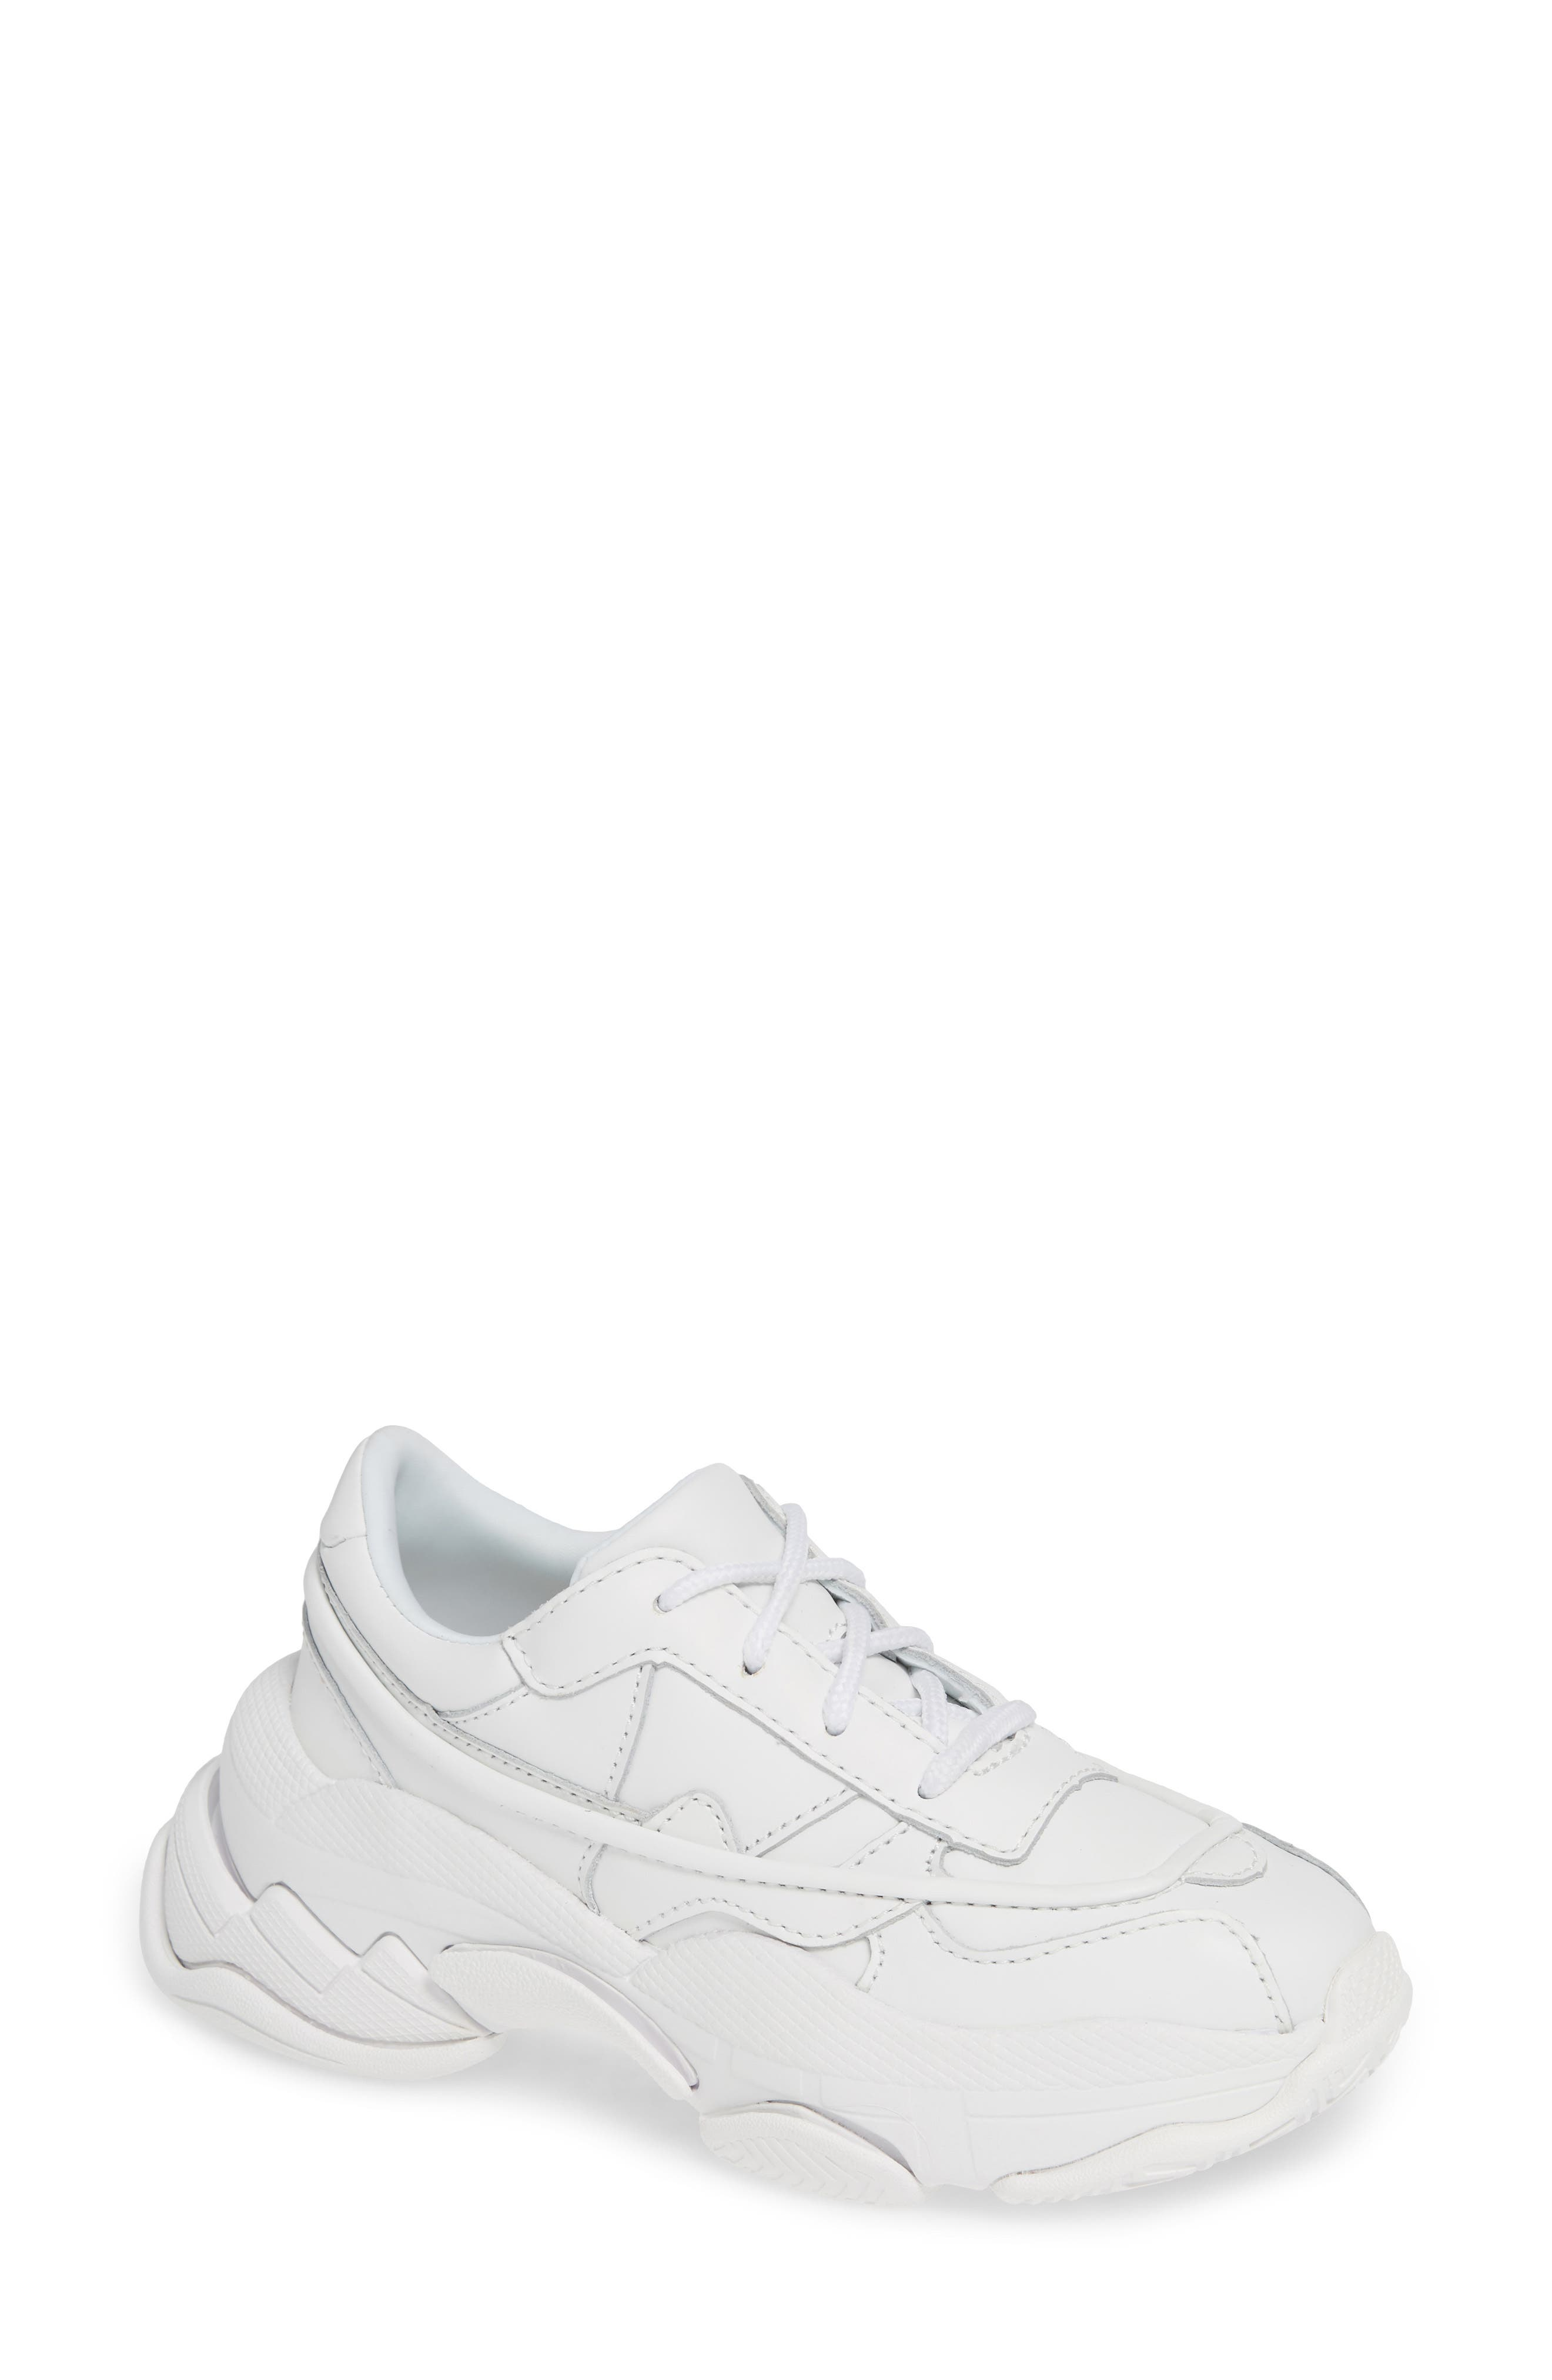 Malware Wedge Sneaker,                         Main,                         color, WHITE